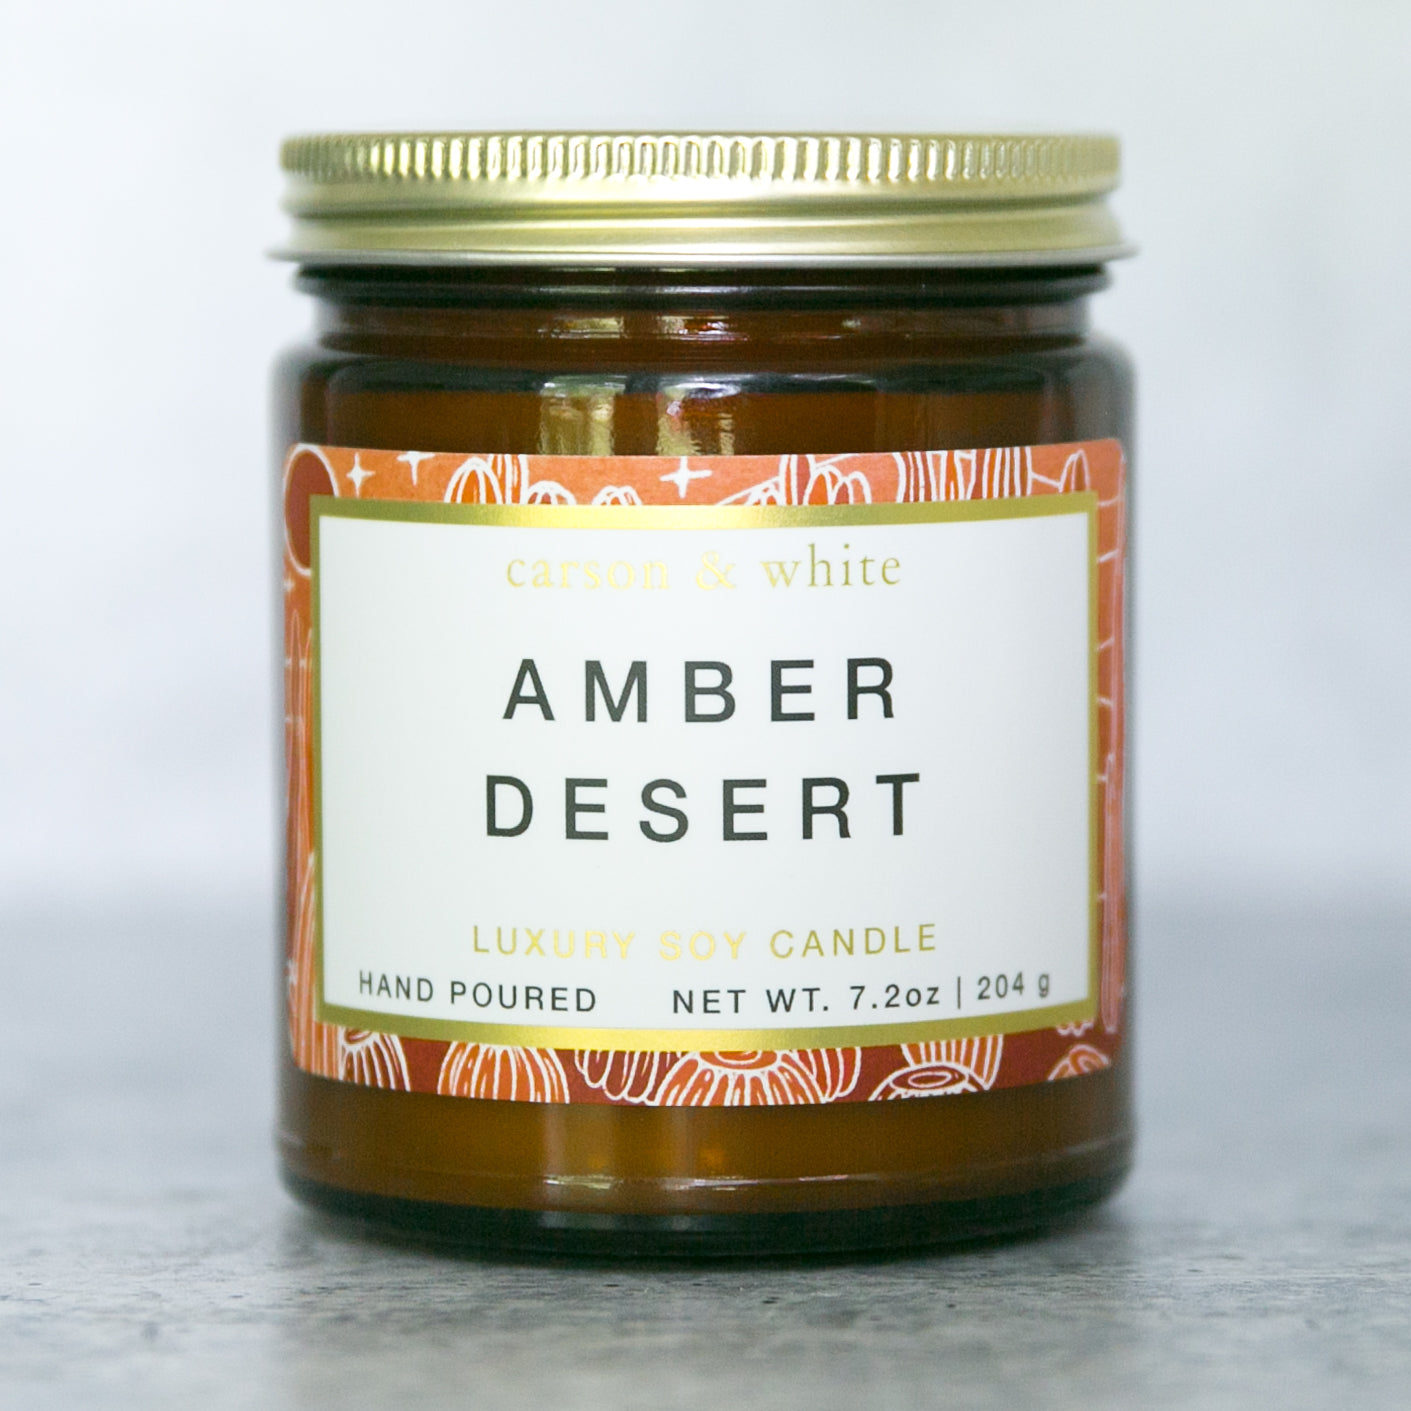 Amber Desert Soy Candle / Terrain